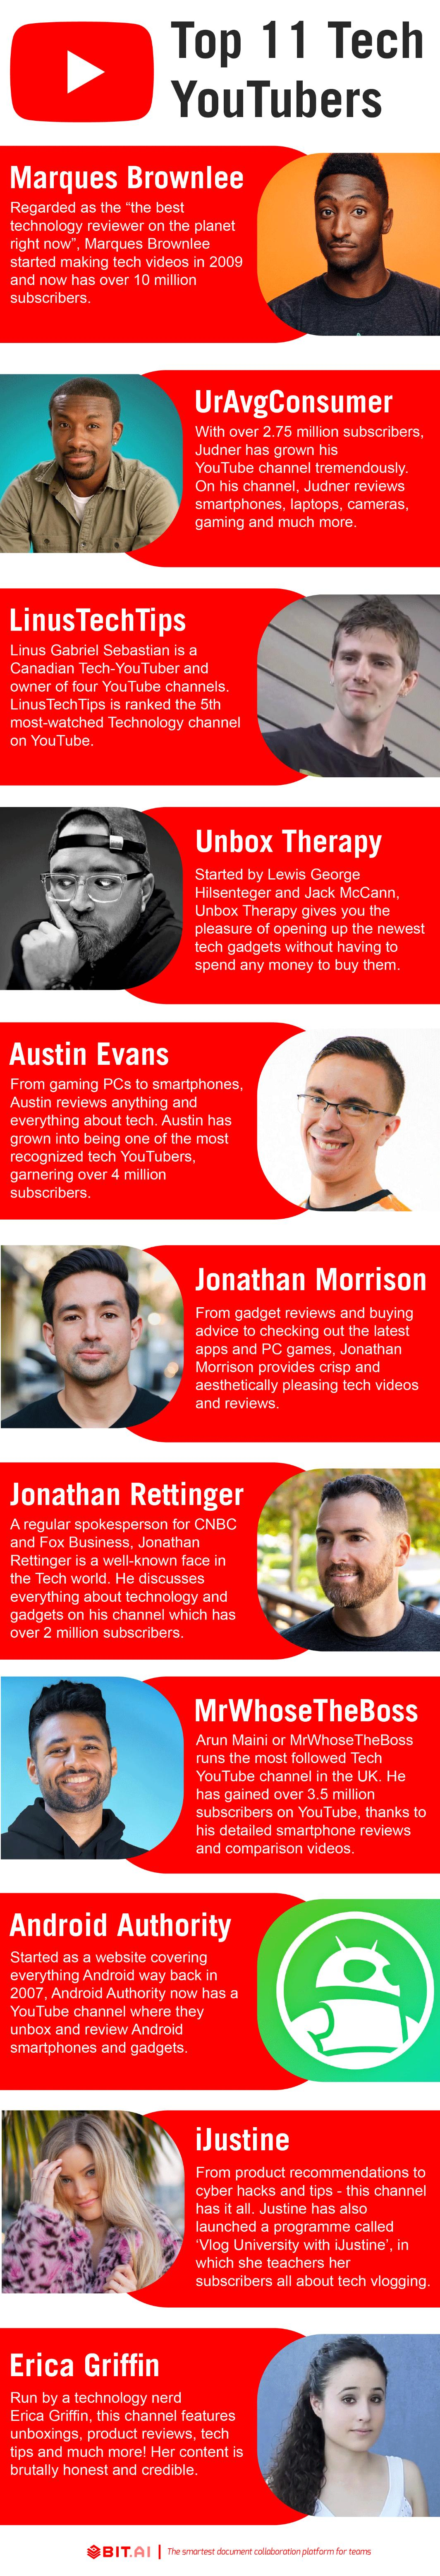 Top tech youtubers infographic